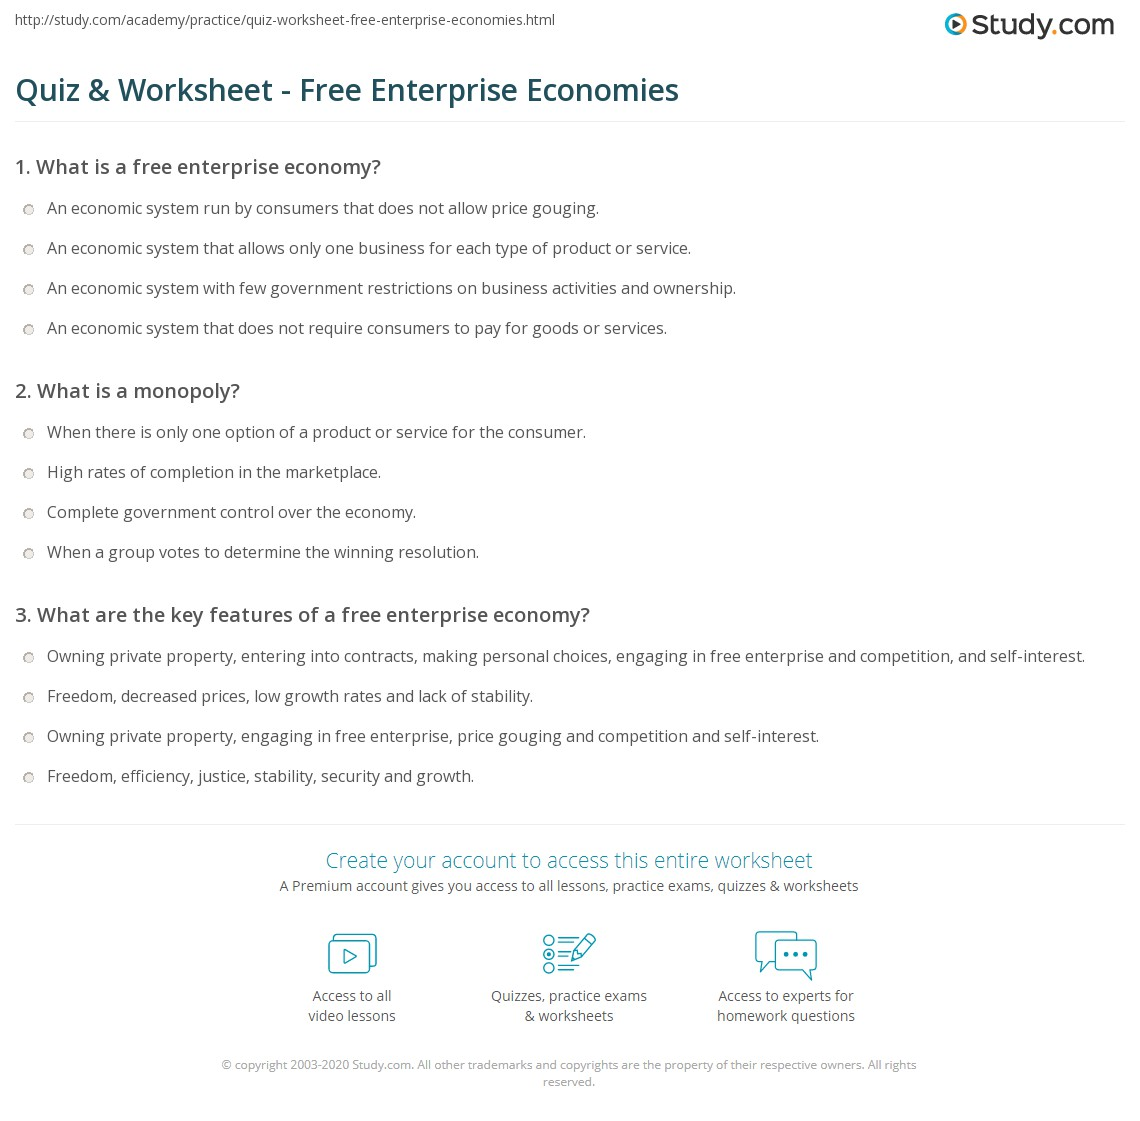 quiz & worksheet - free enterprise economies | study